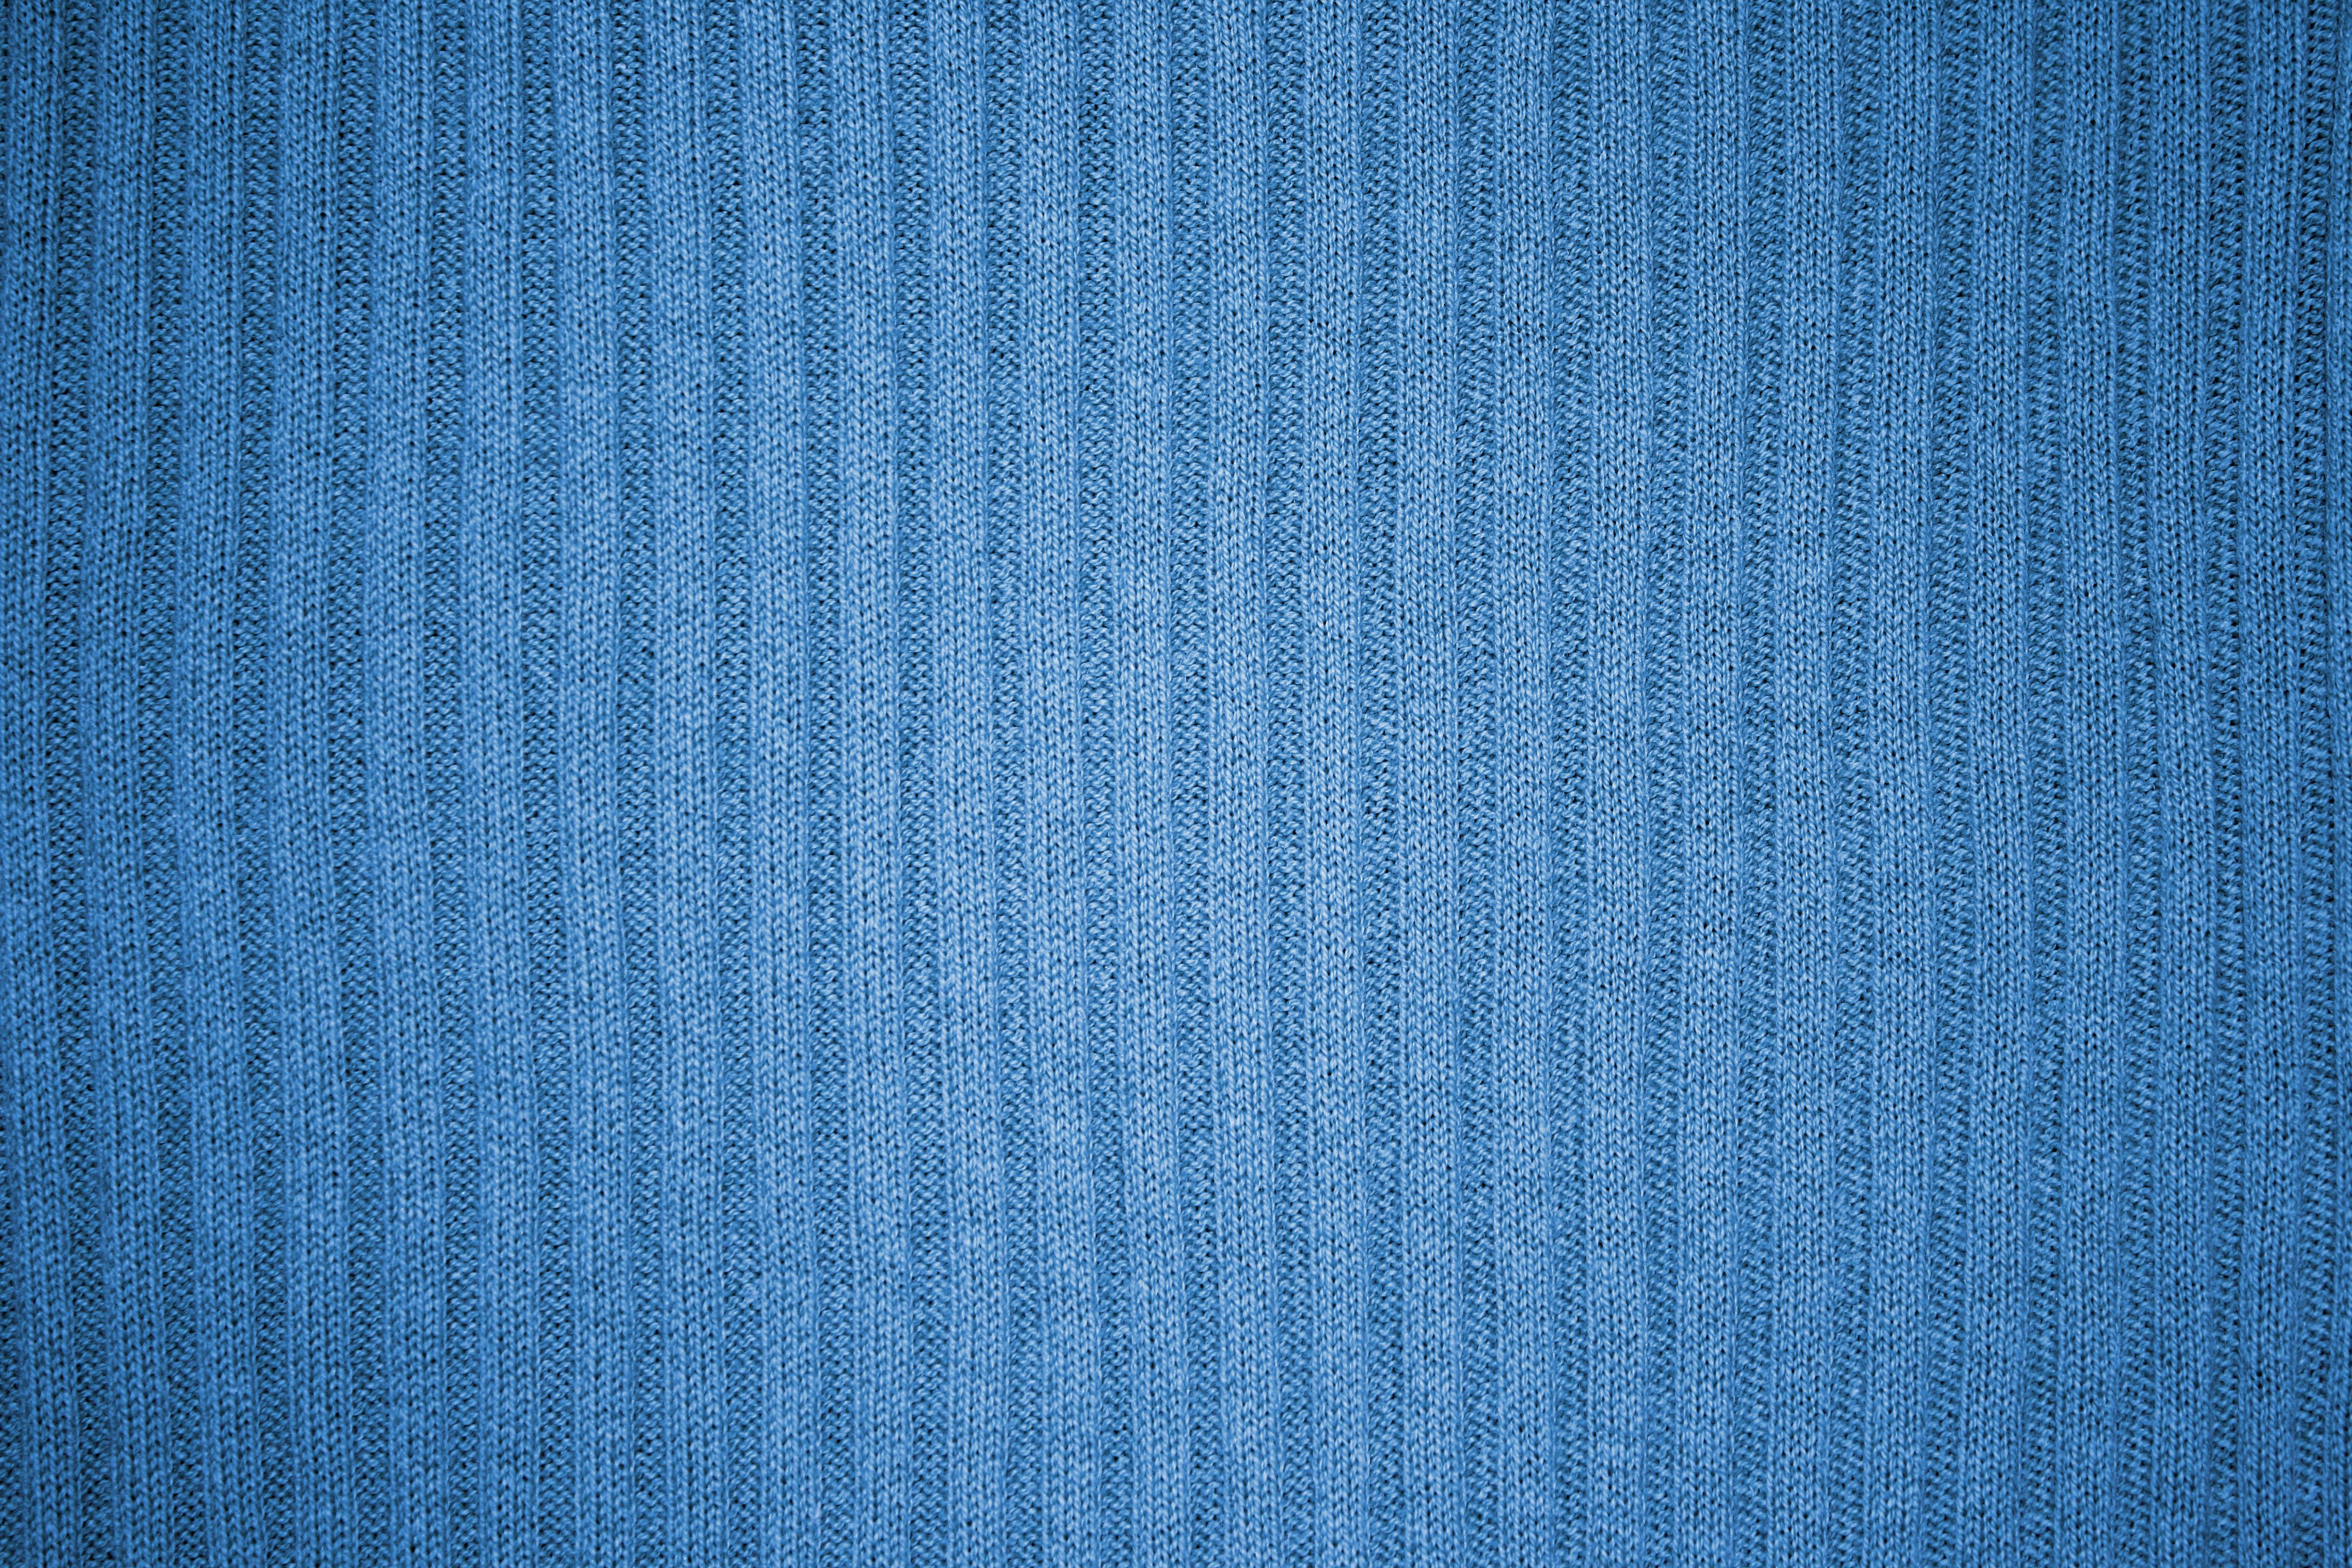 Light Blue Ribbed Knit Fabric Texture